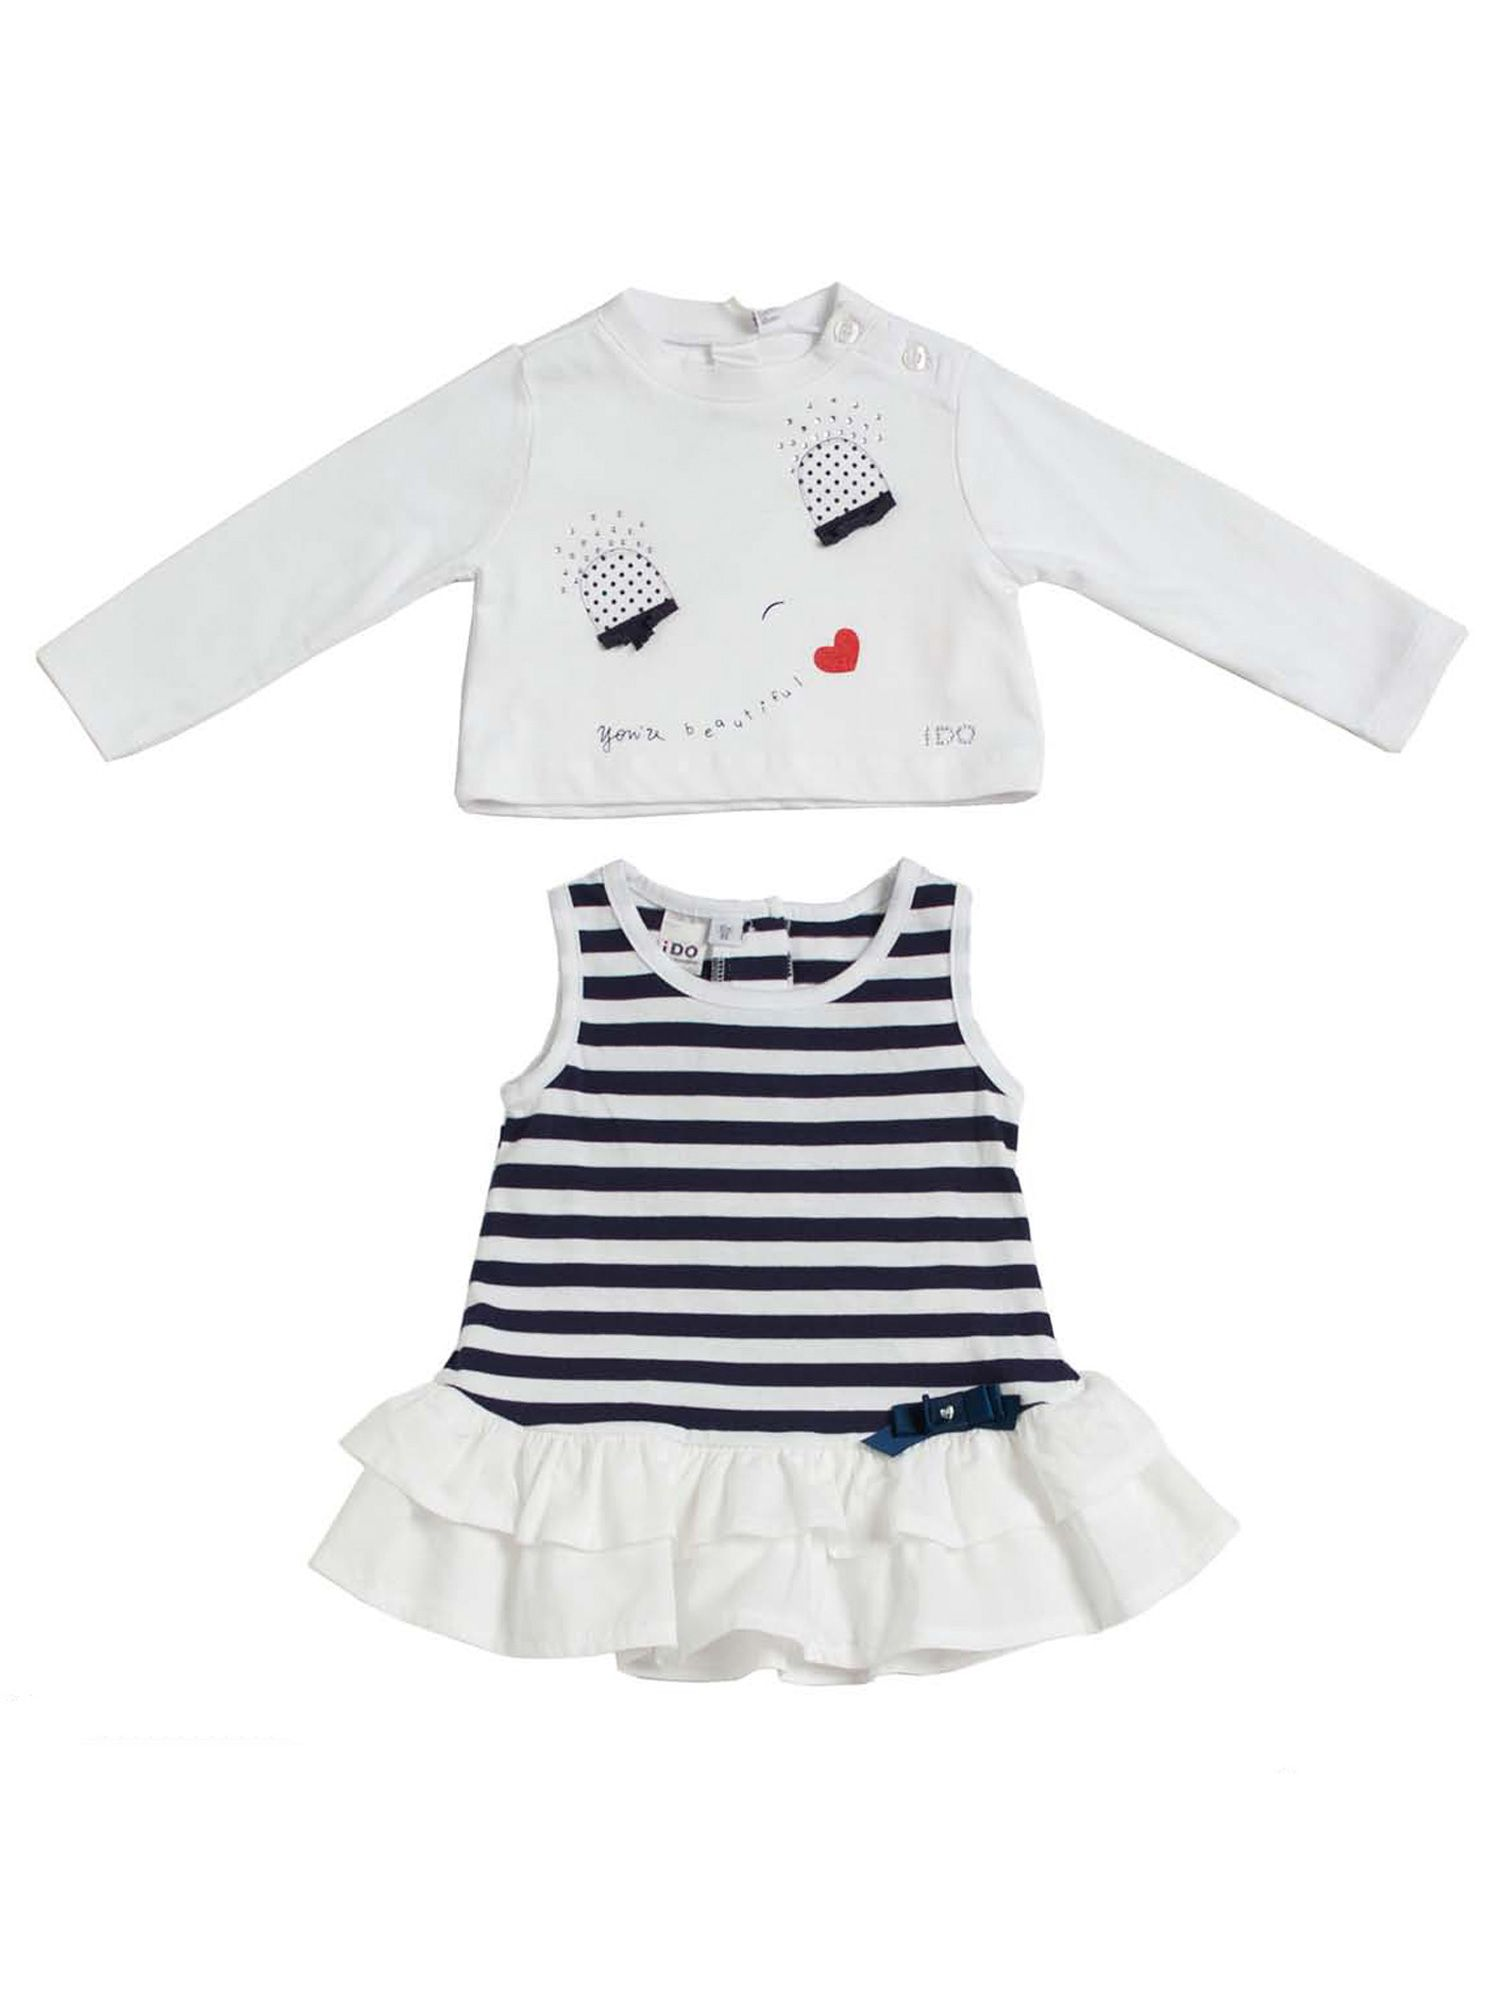 Girls t-shirt and dress set